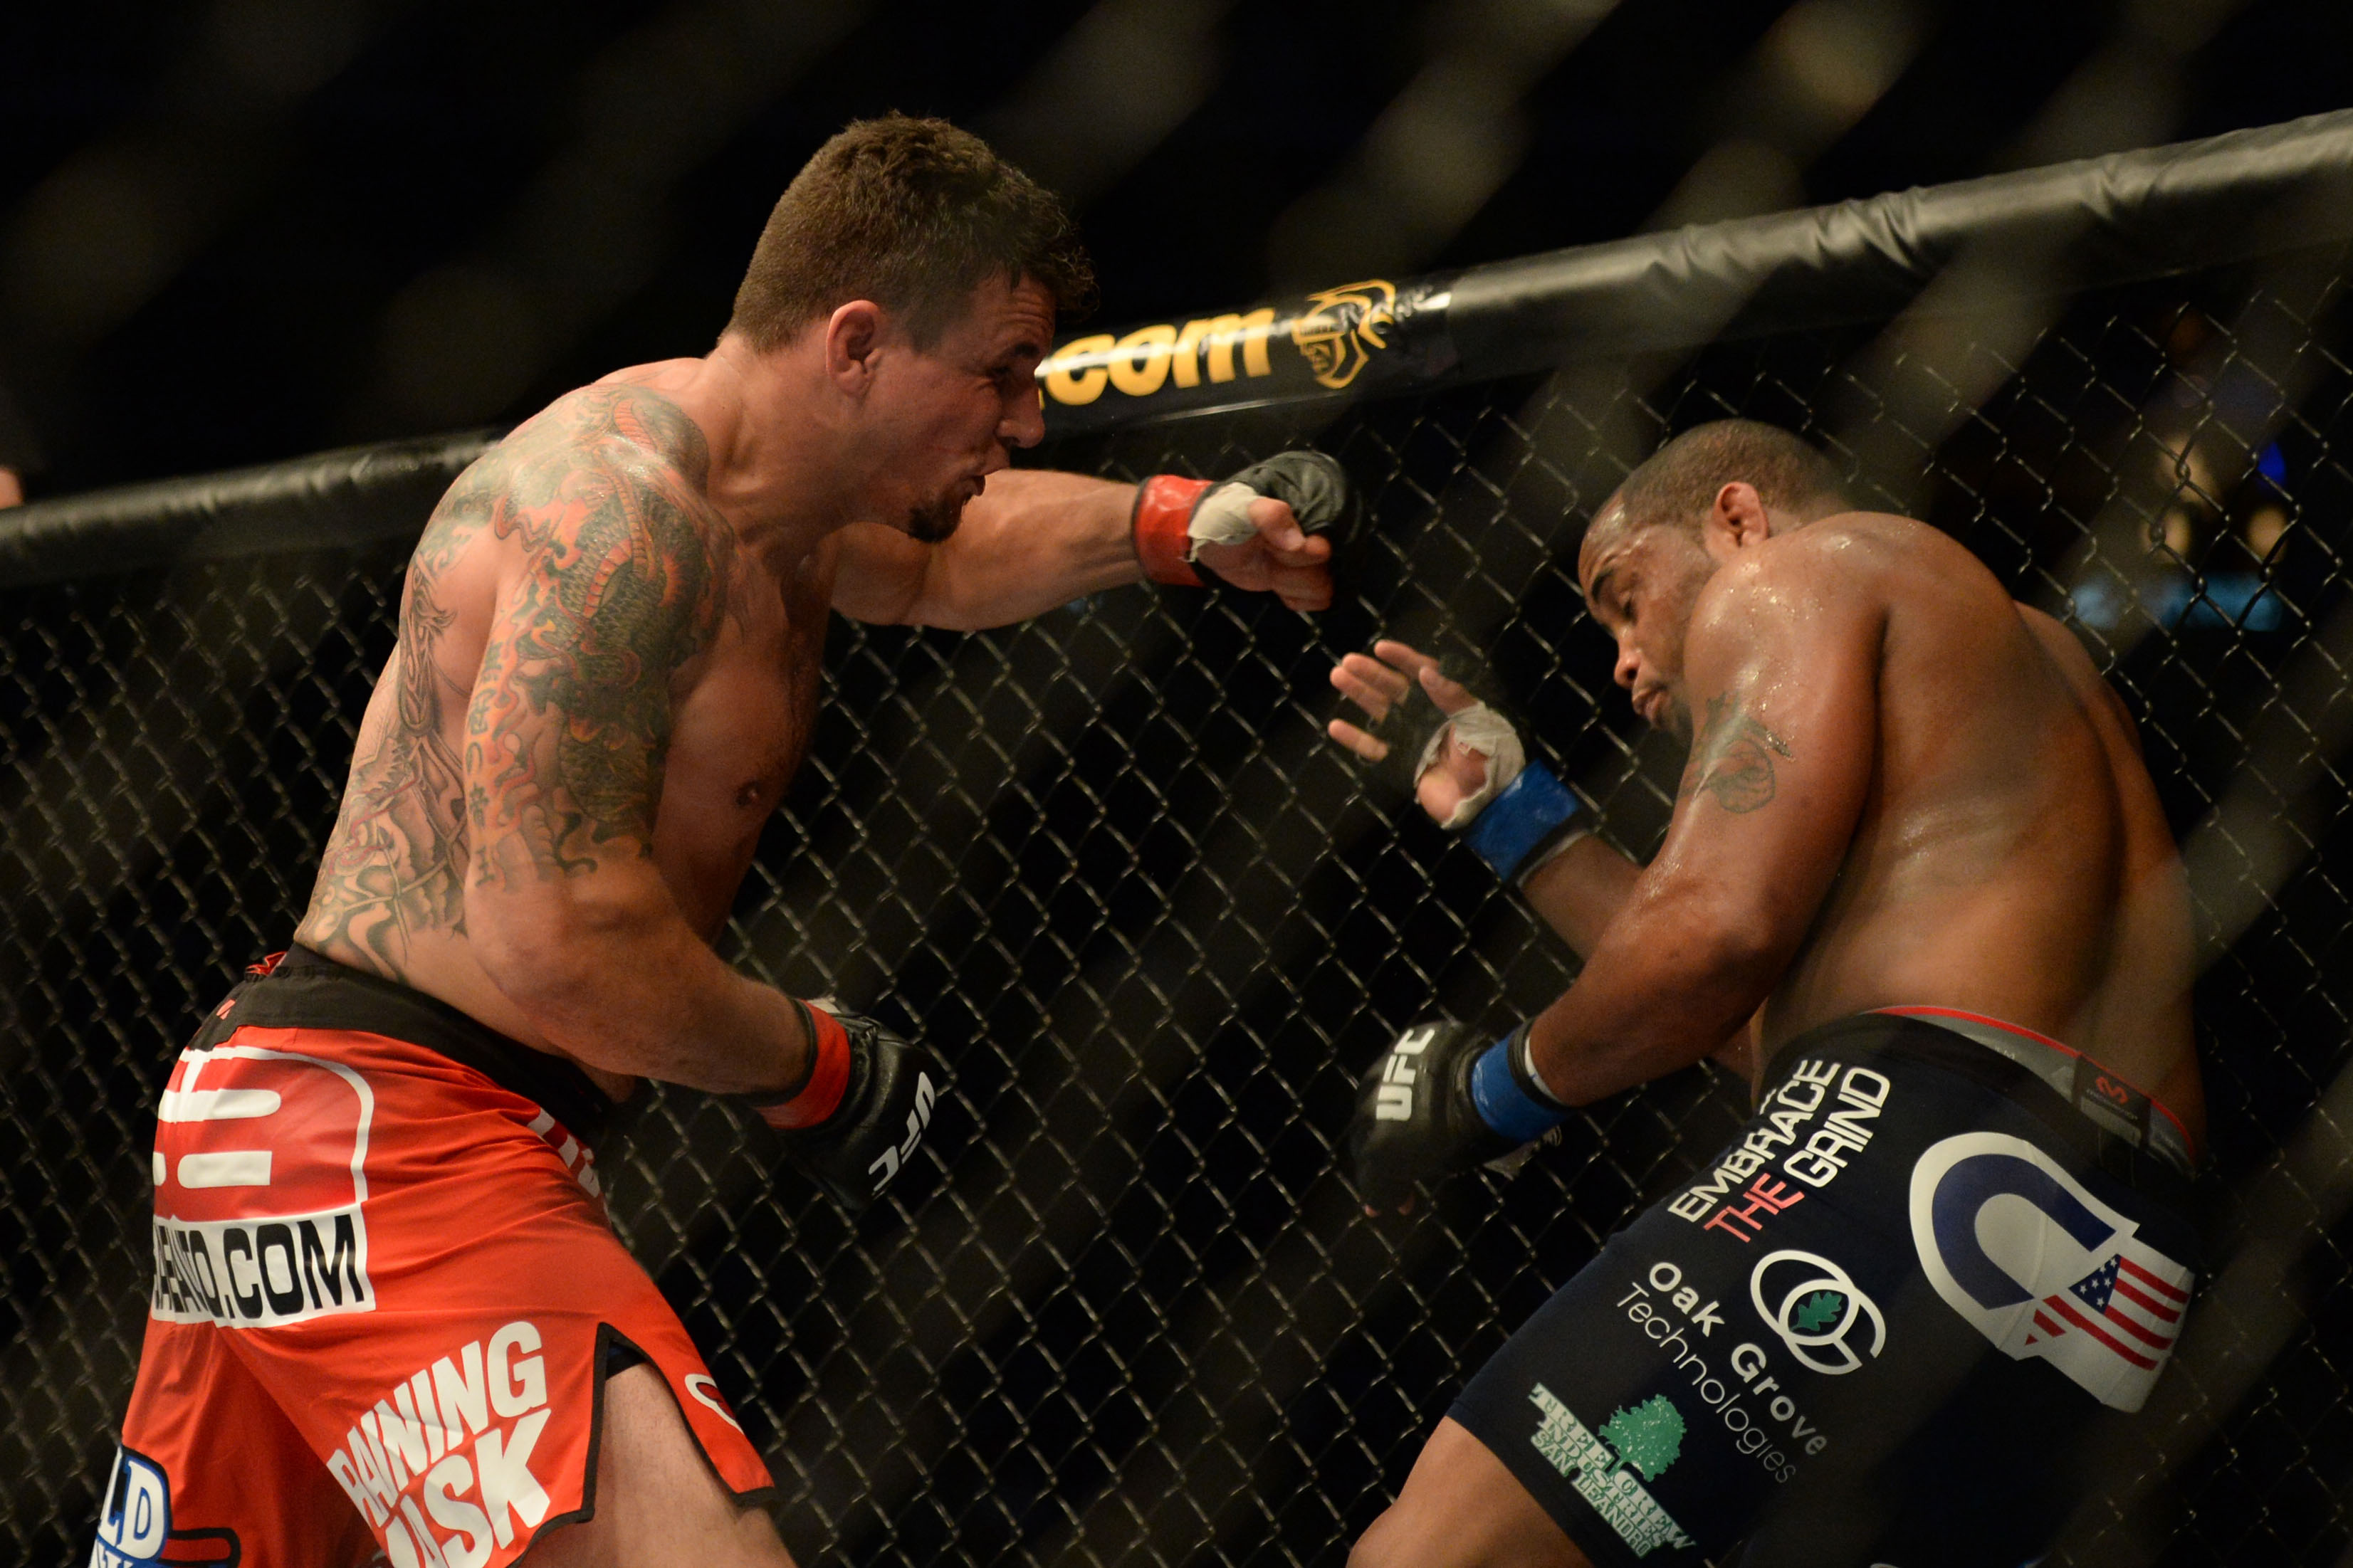 Frank Mir punches Daniel Cormier during their heavyweight fight. (USA Today)